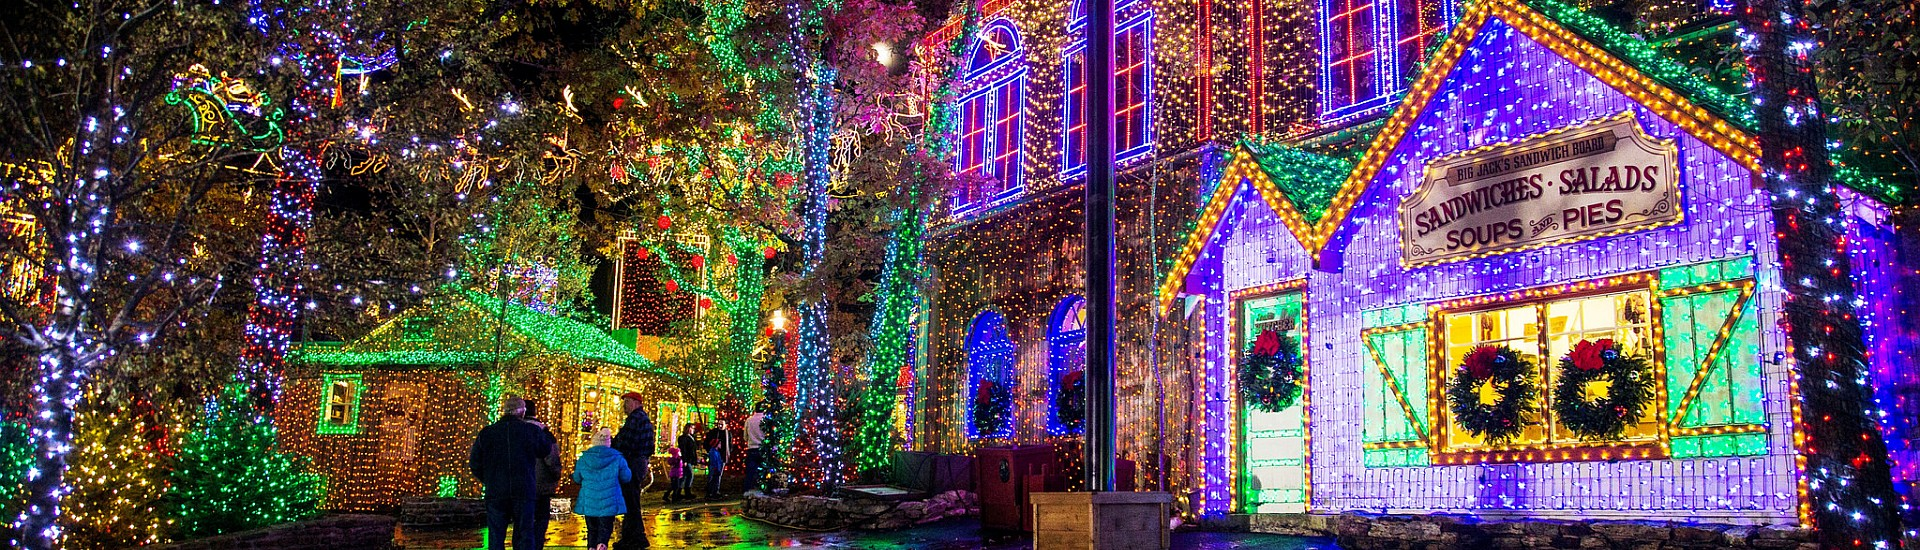 Branson Christmas Packages 2019 5+ of the Best Branson Christmas Light Displays!   Branson Travel